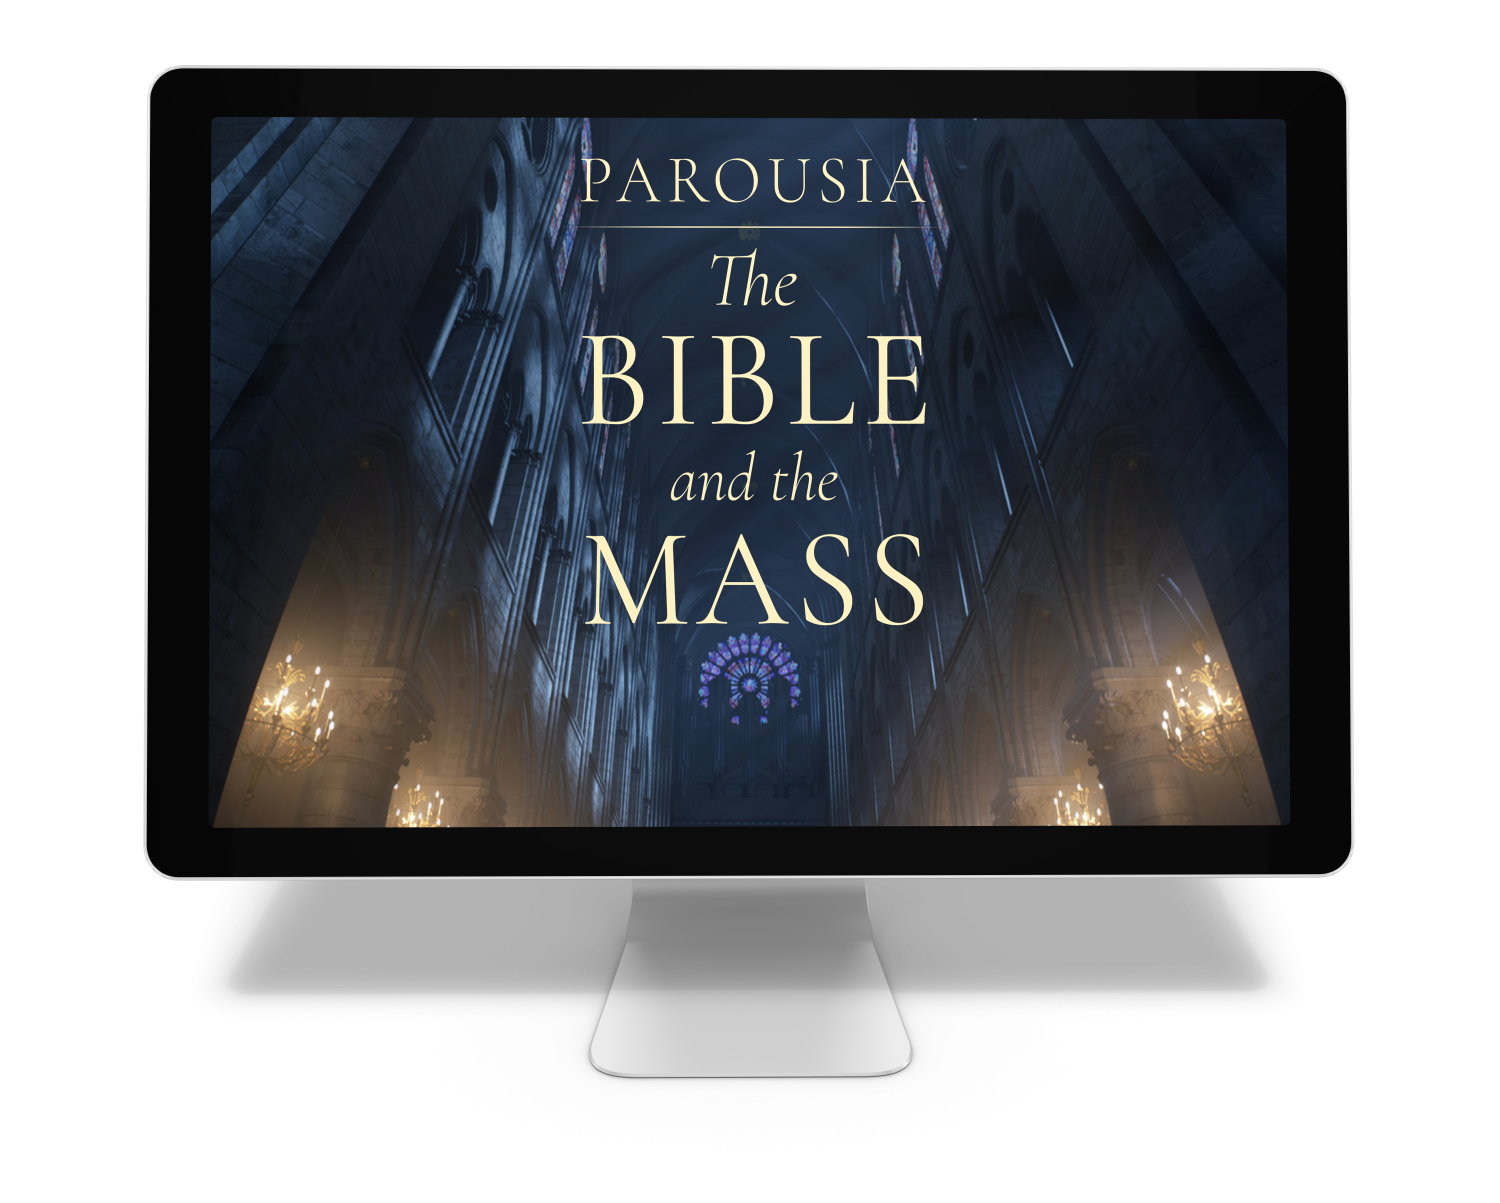 Parousia: The Bible and the Mass